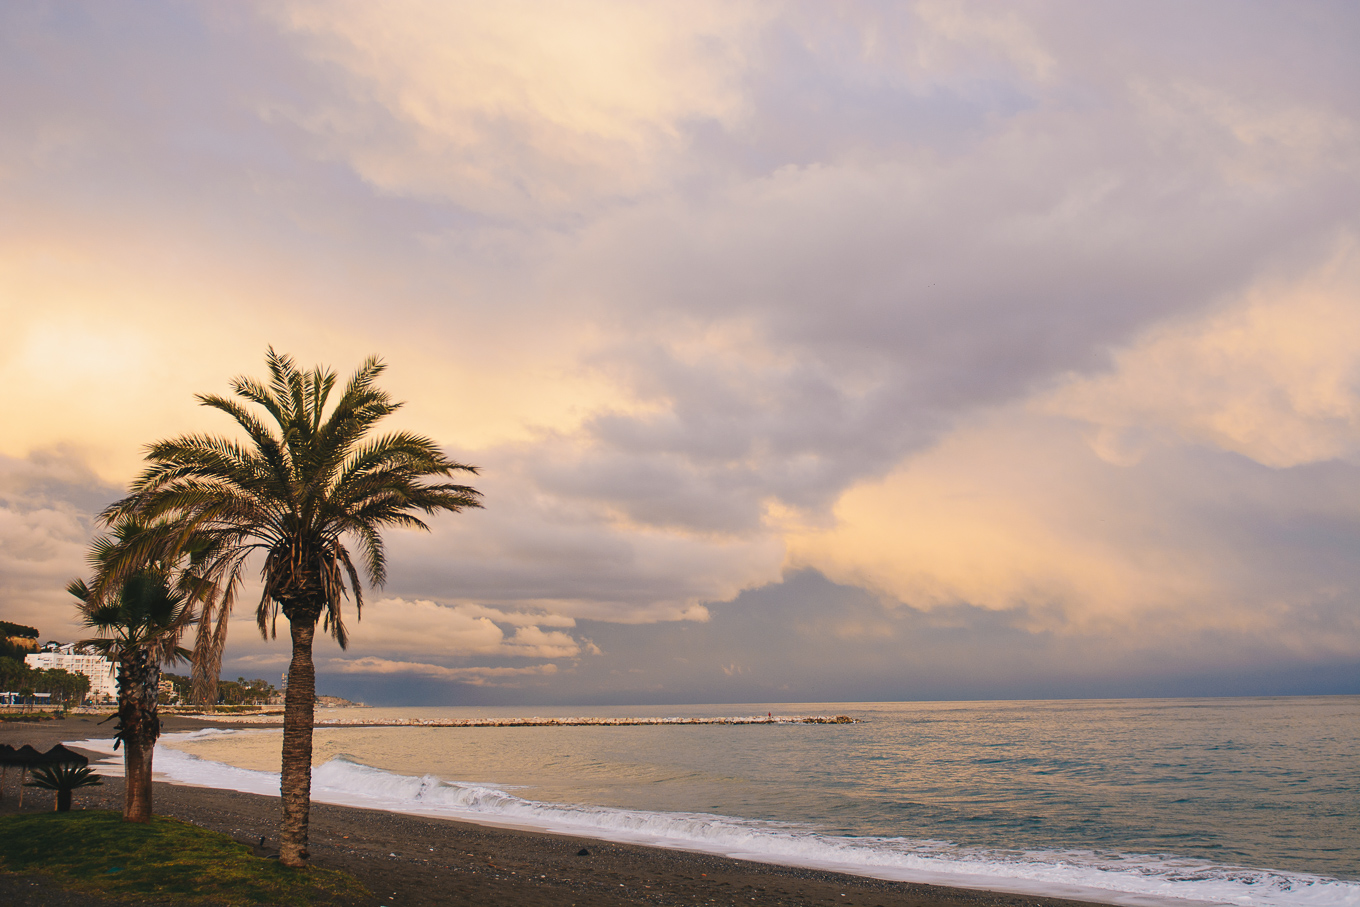 After storm beach malaga